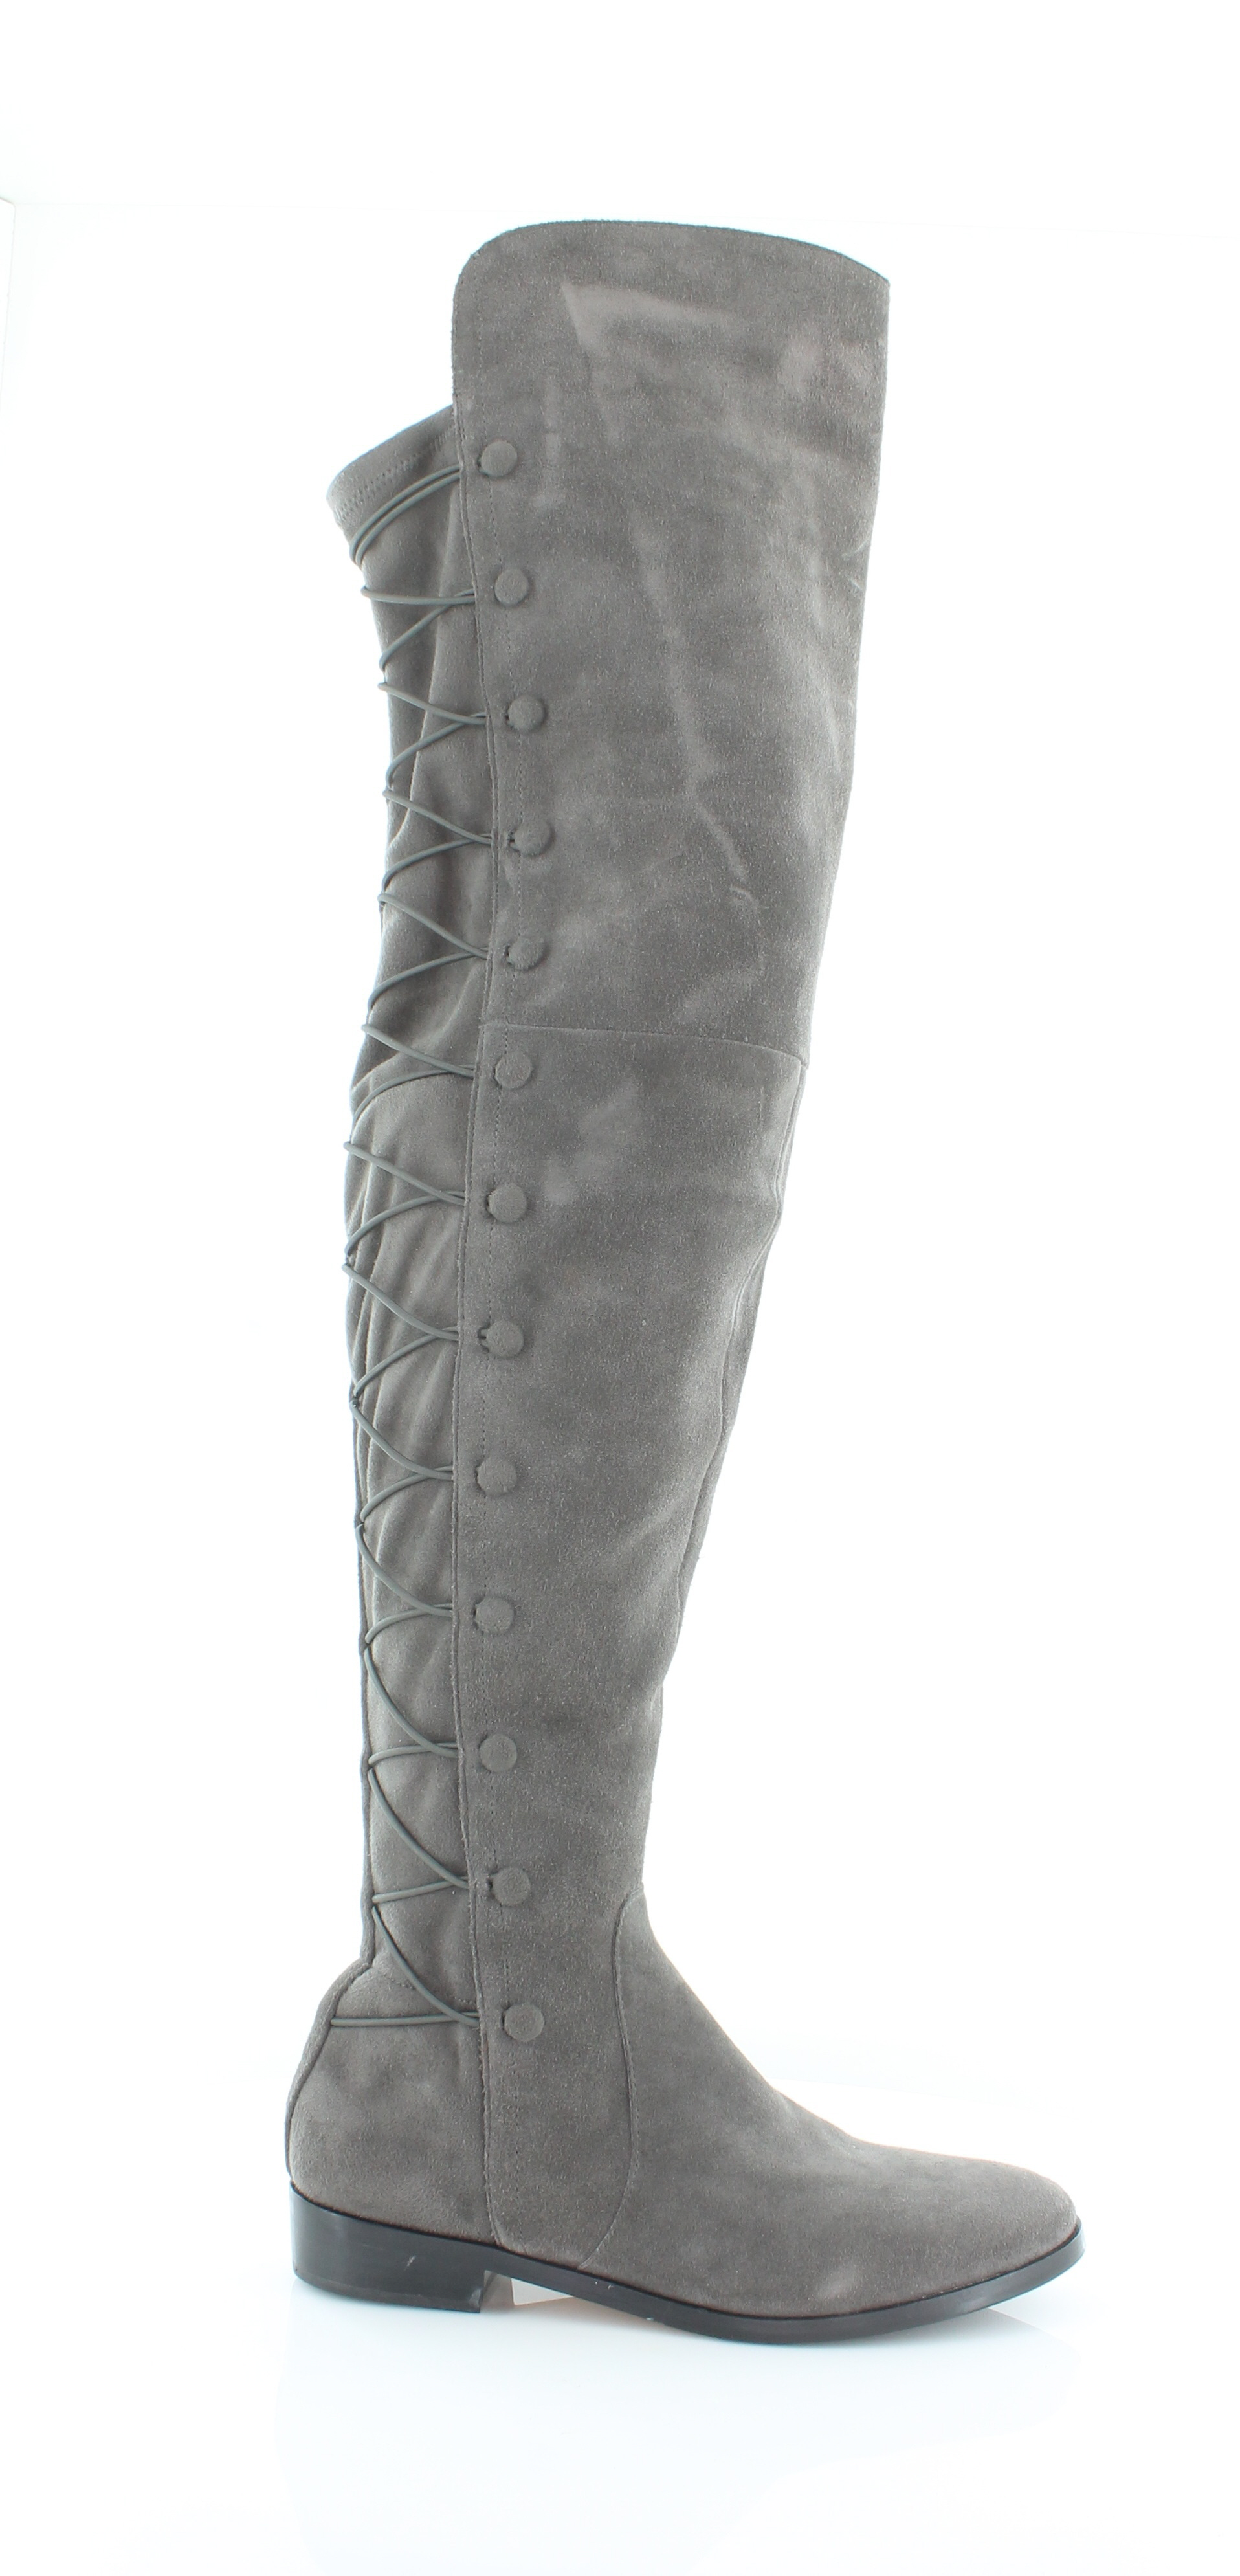 adad99419c8 Vince Camuto New Coatia Gray Womens Shoes Size 7.5 M Boots MSRP  198 ...